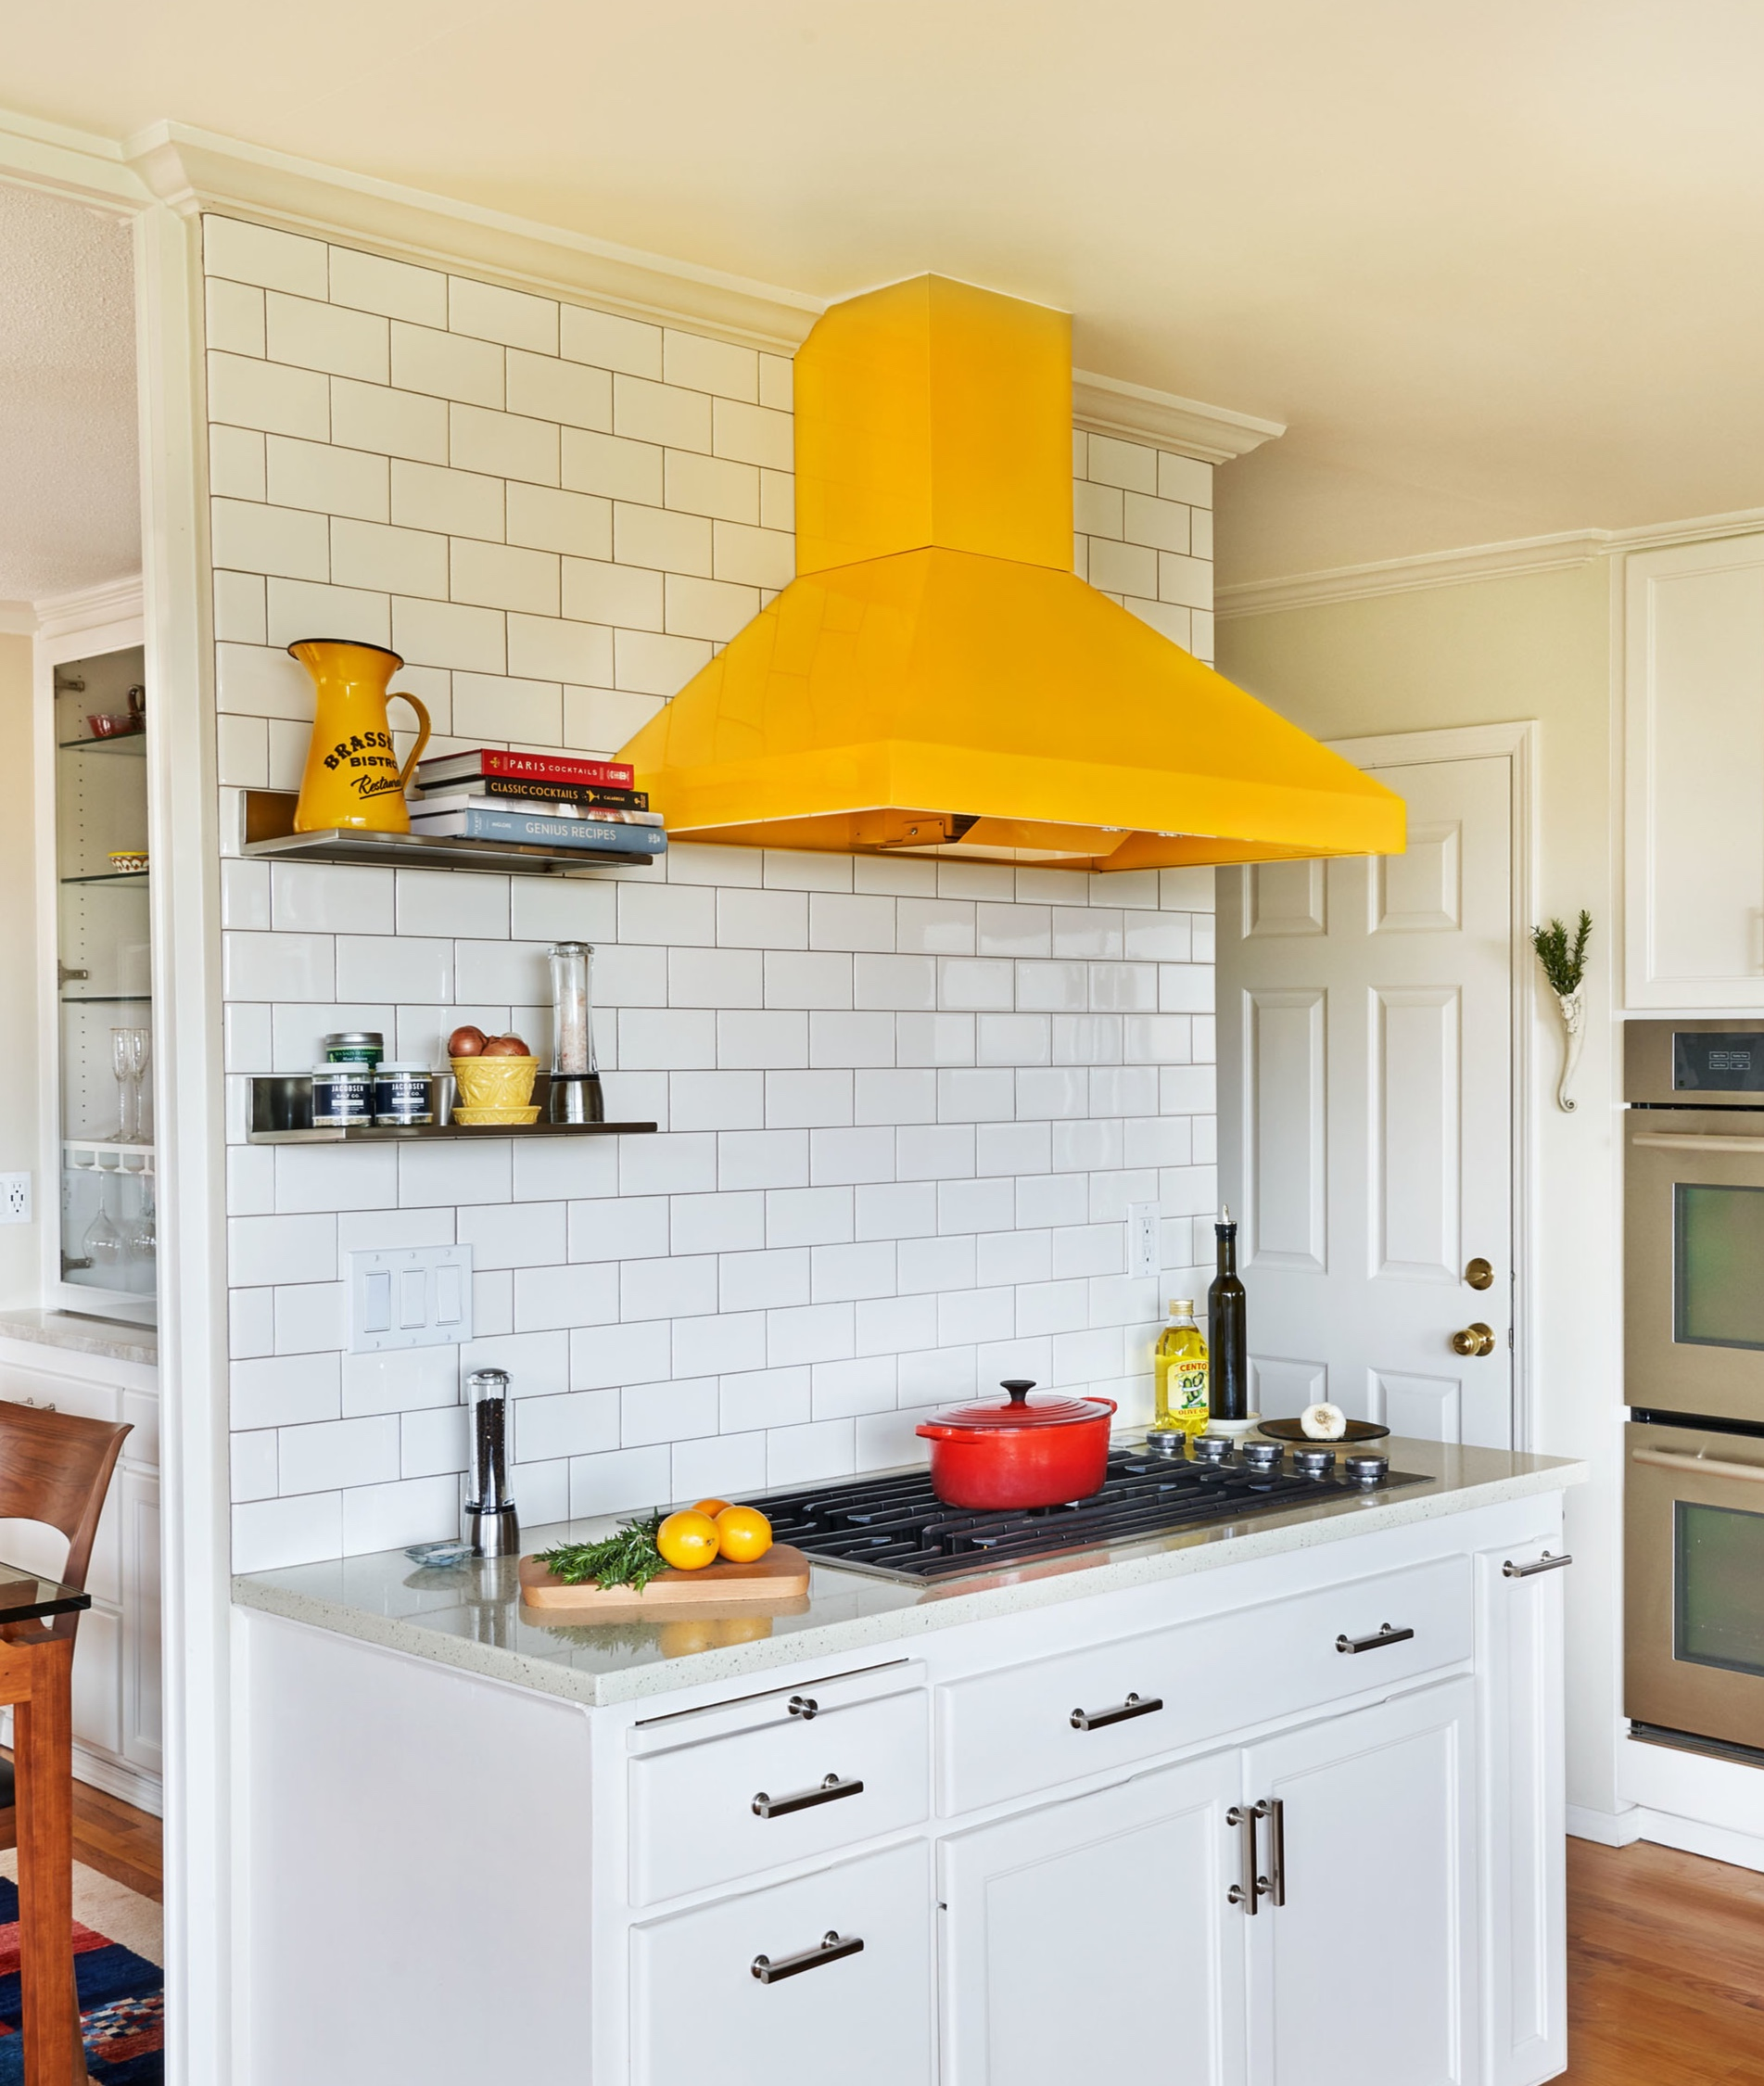 New hood / pop of color in existing kitchen